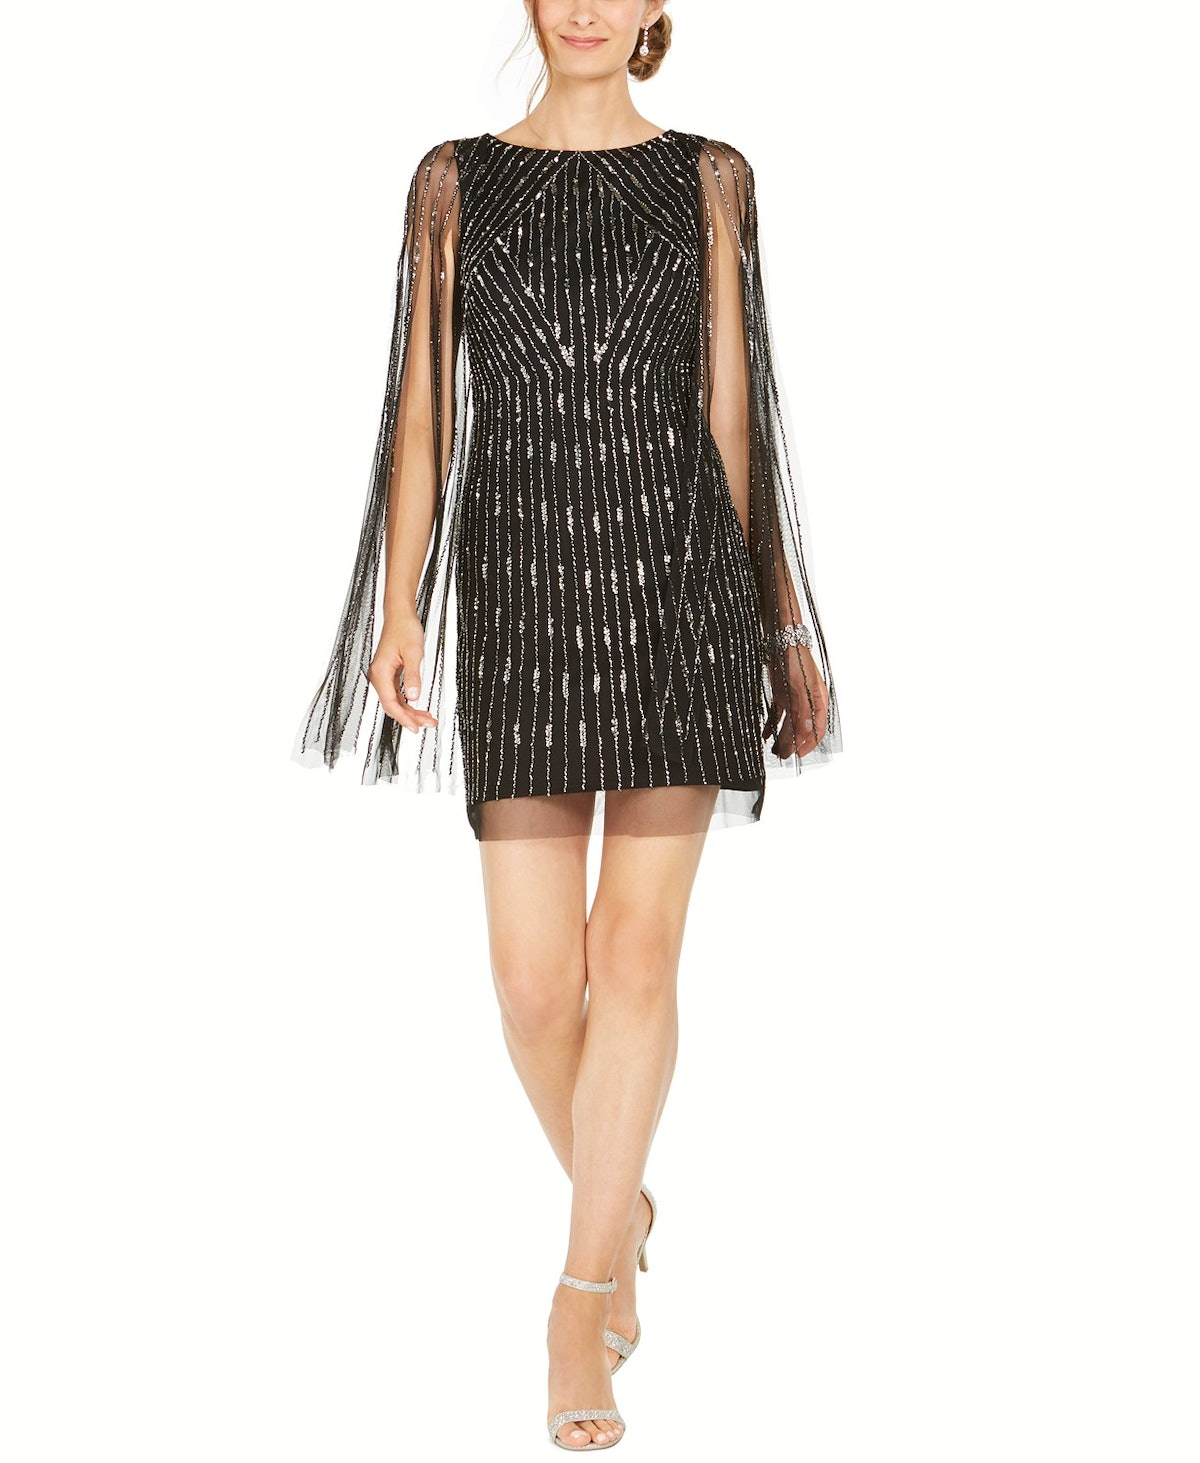 Adrianna Papell Embellished Cape Dress